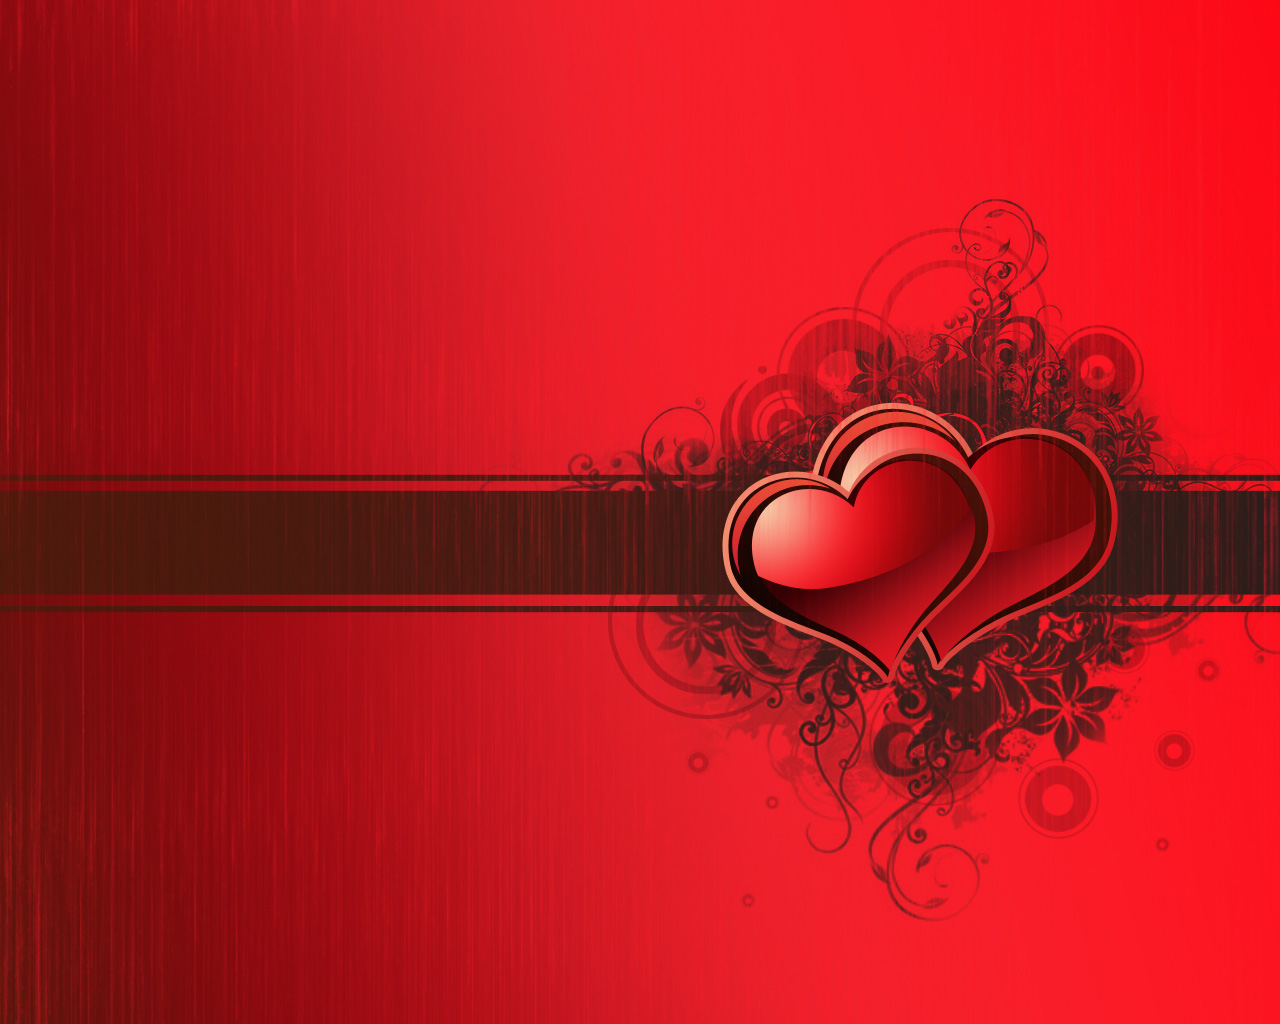 valentine wallpaper images 16 high resolution wallpaper - hdlovewall